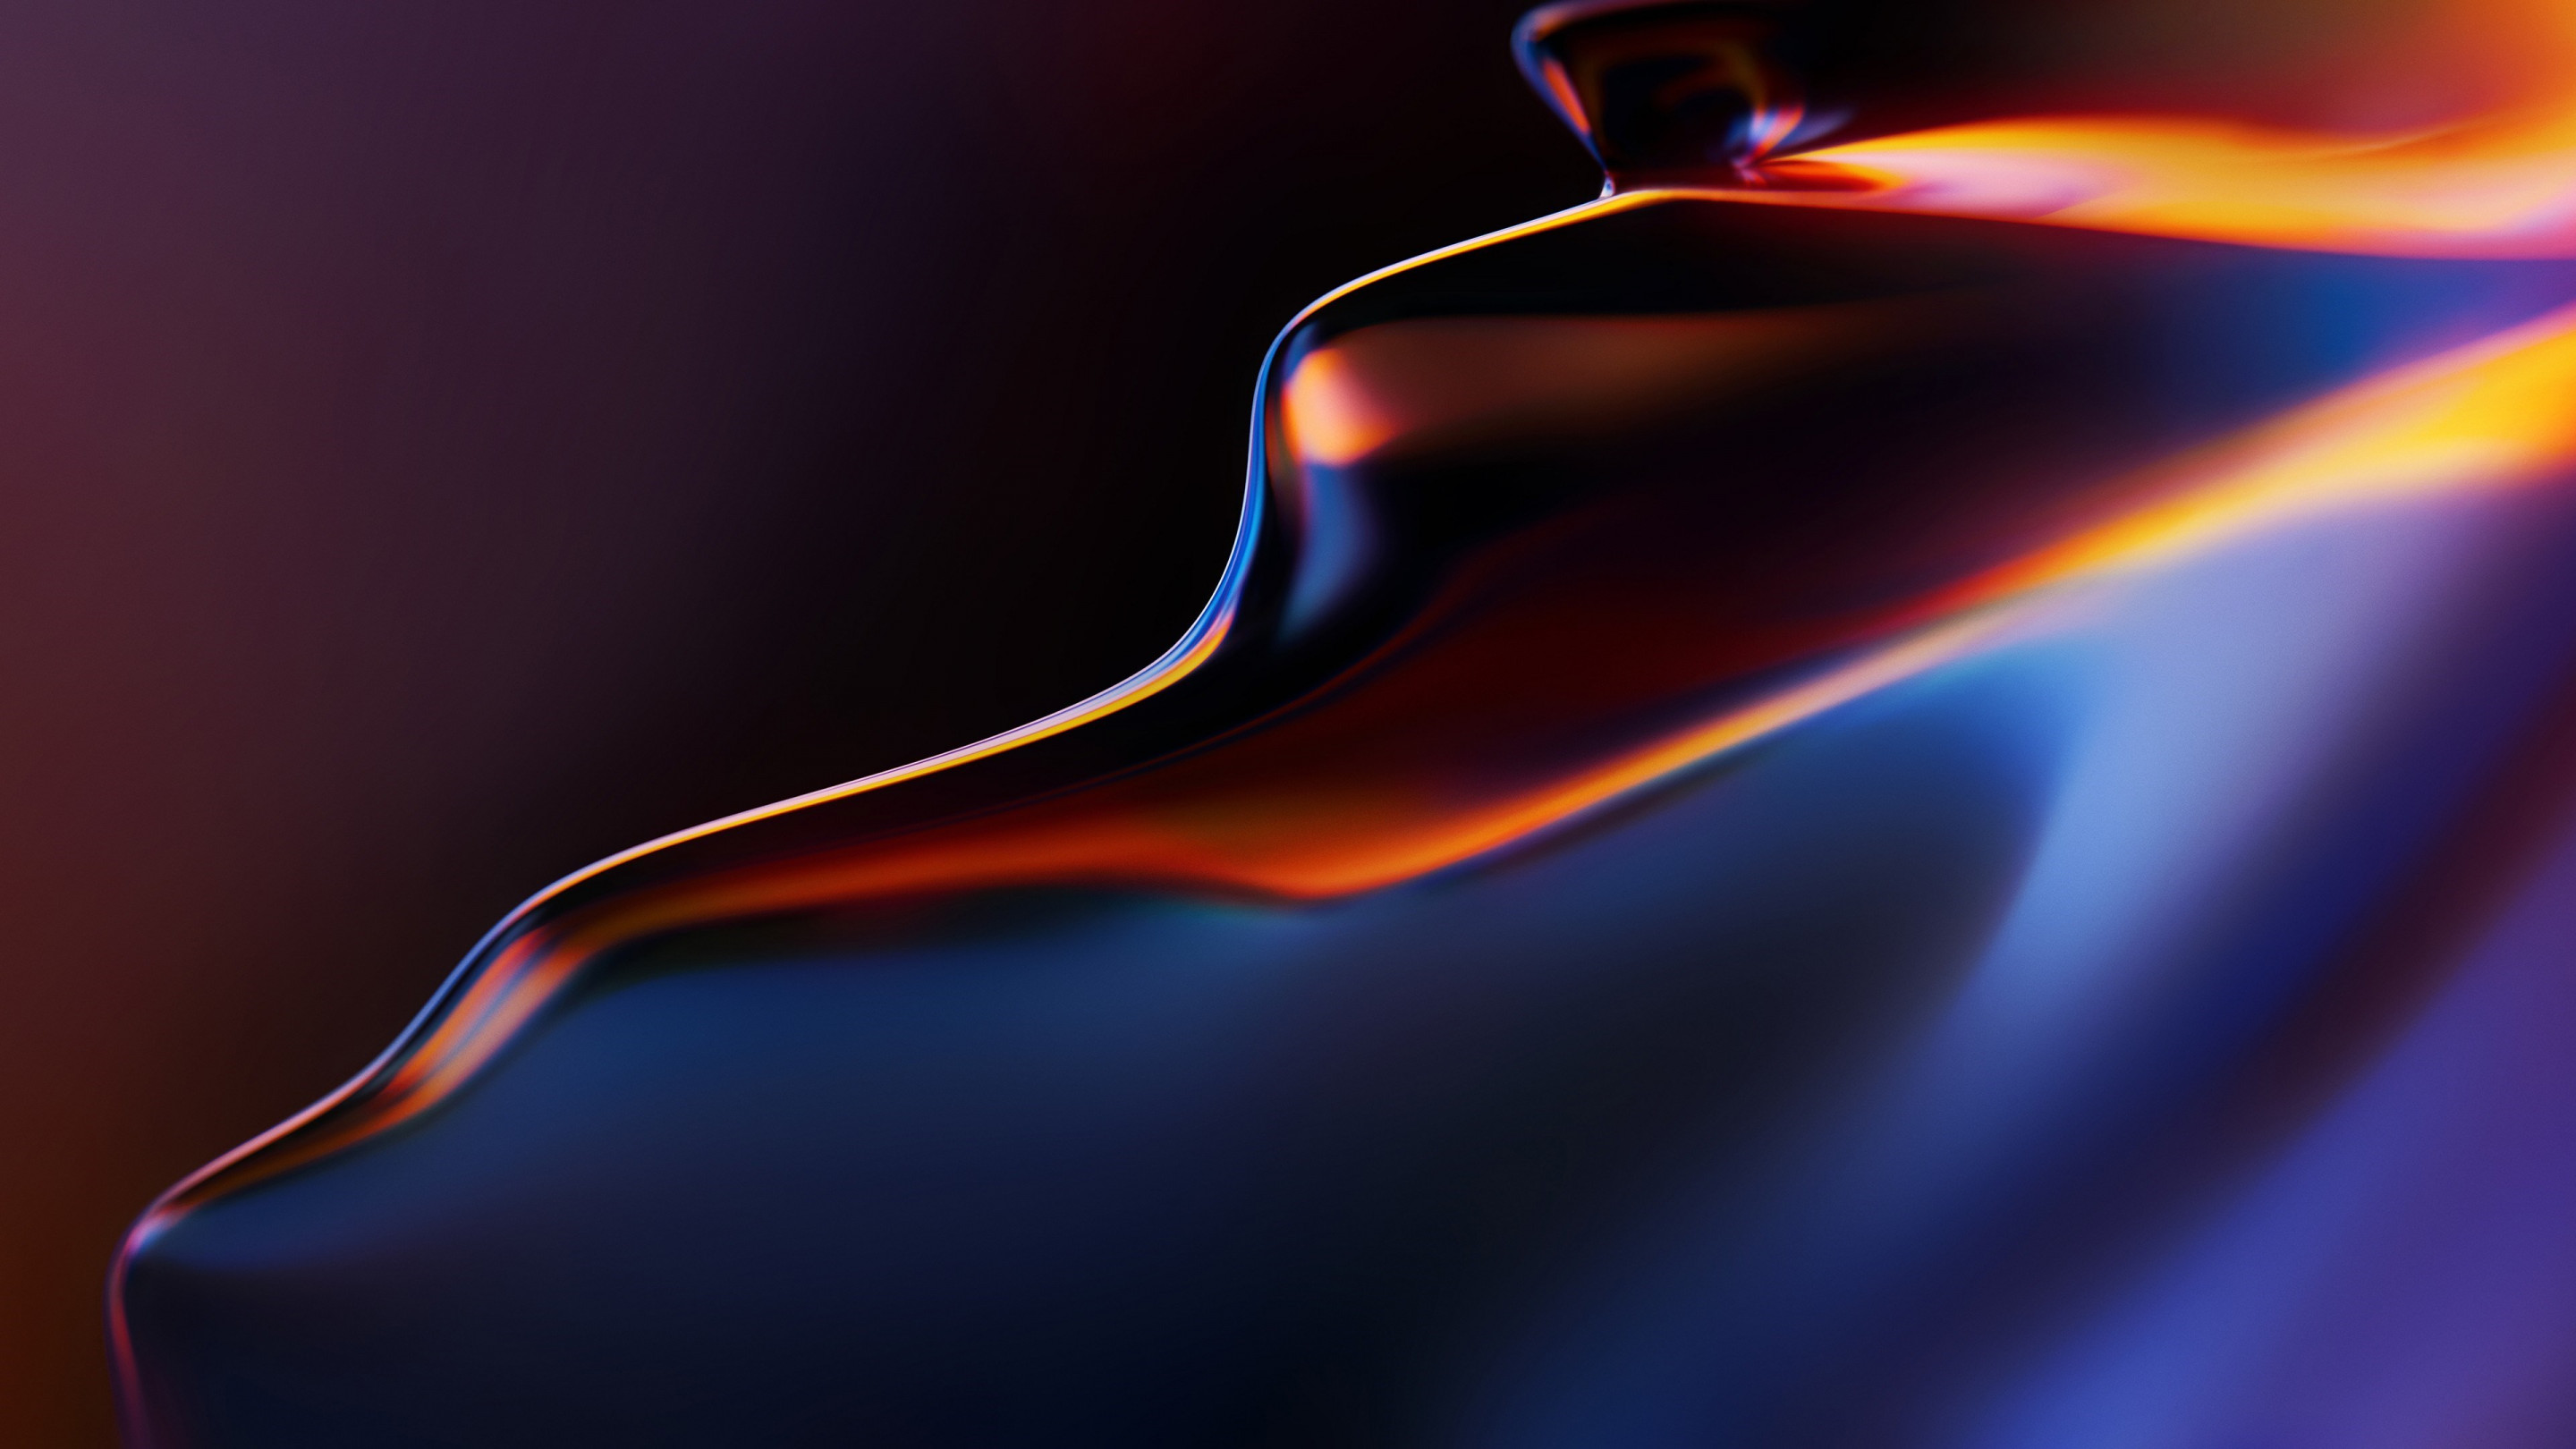 Abstract, flow, OnePlus 6T wallpaper 2880x1620